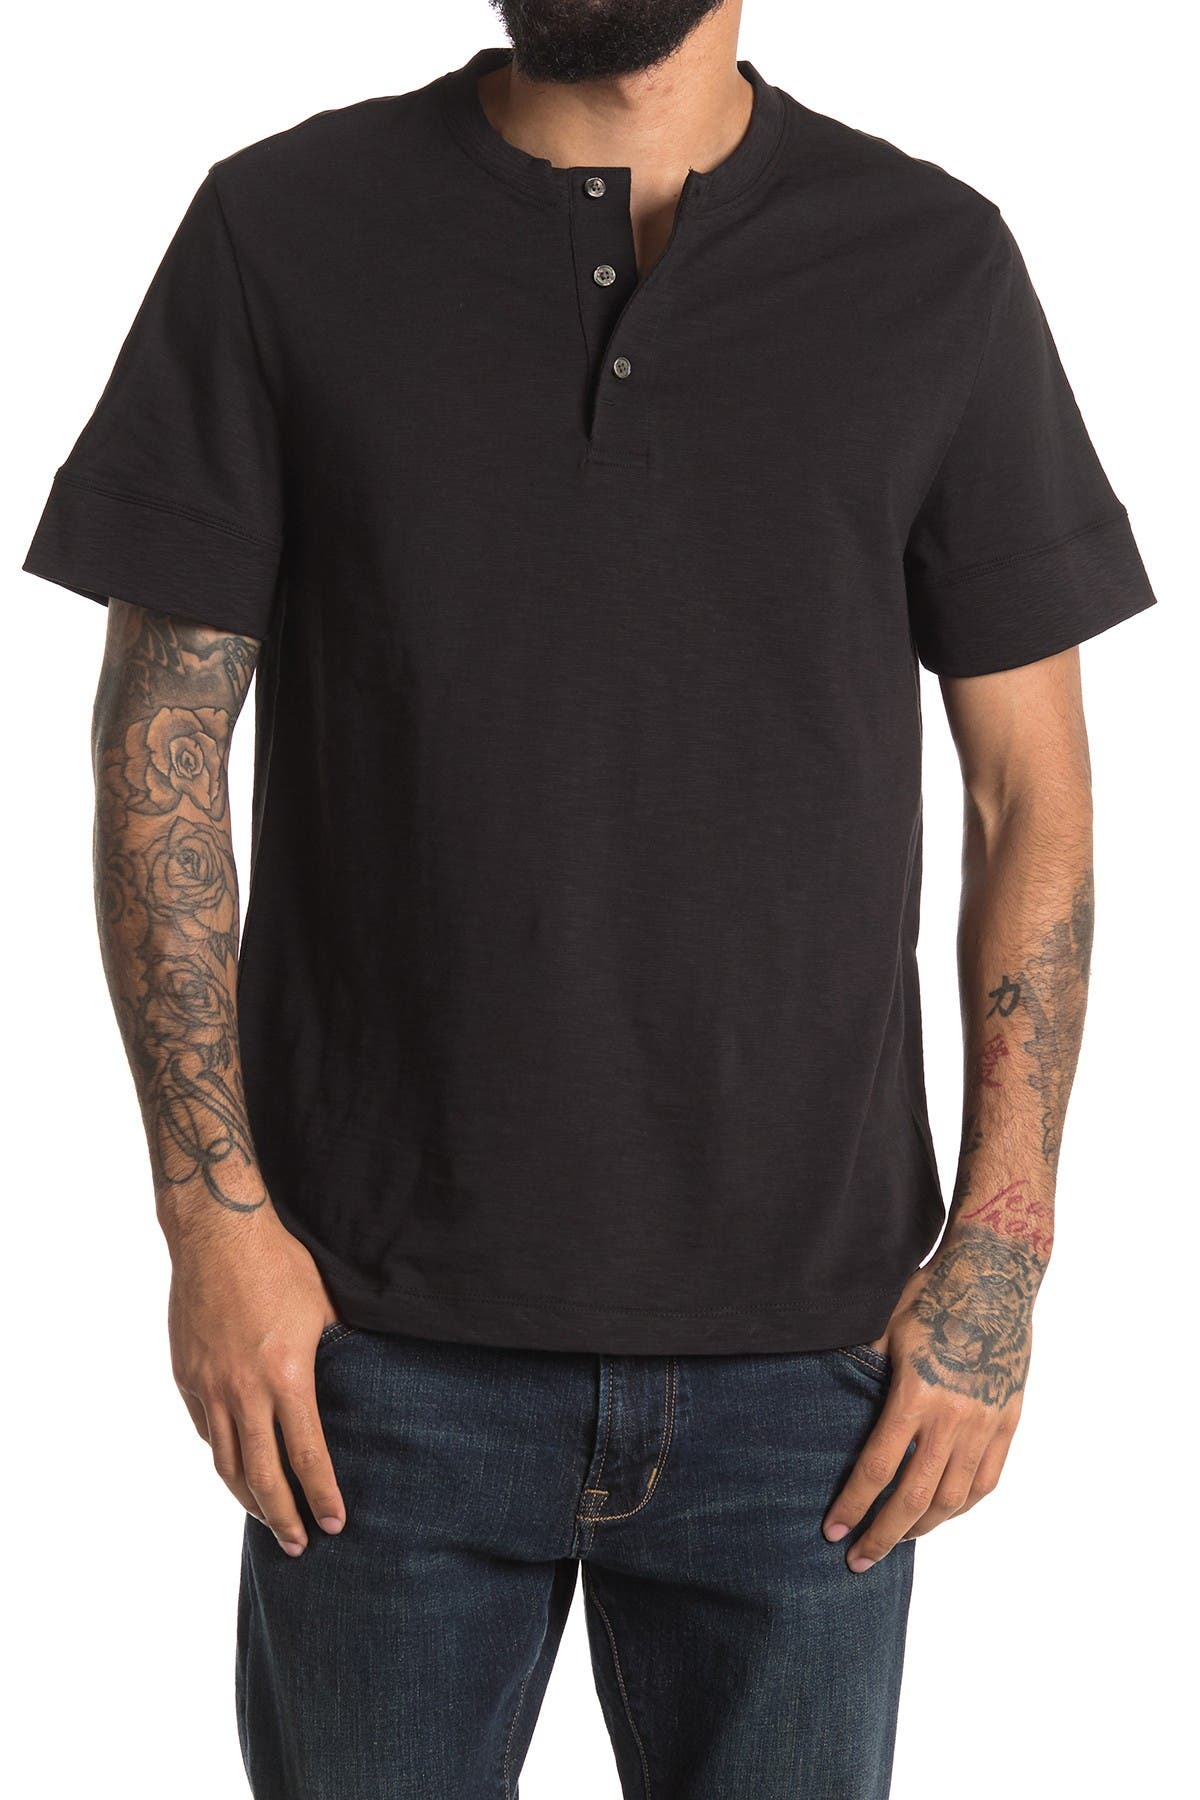 Image of DKNY Short Sleeve Henley Tee